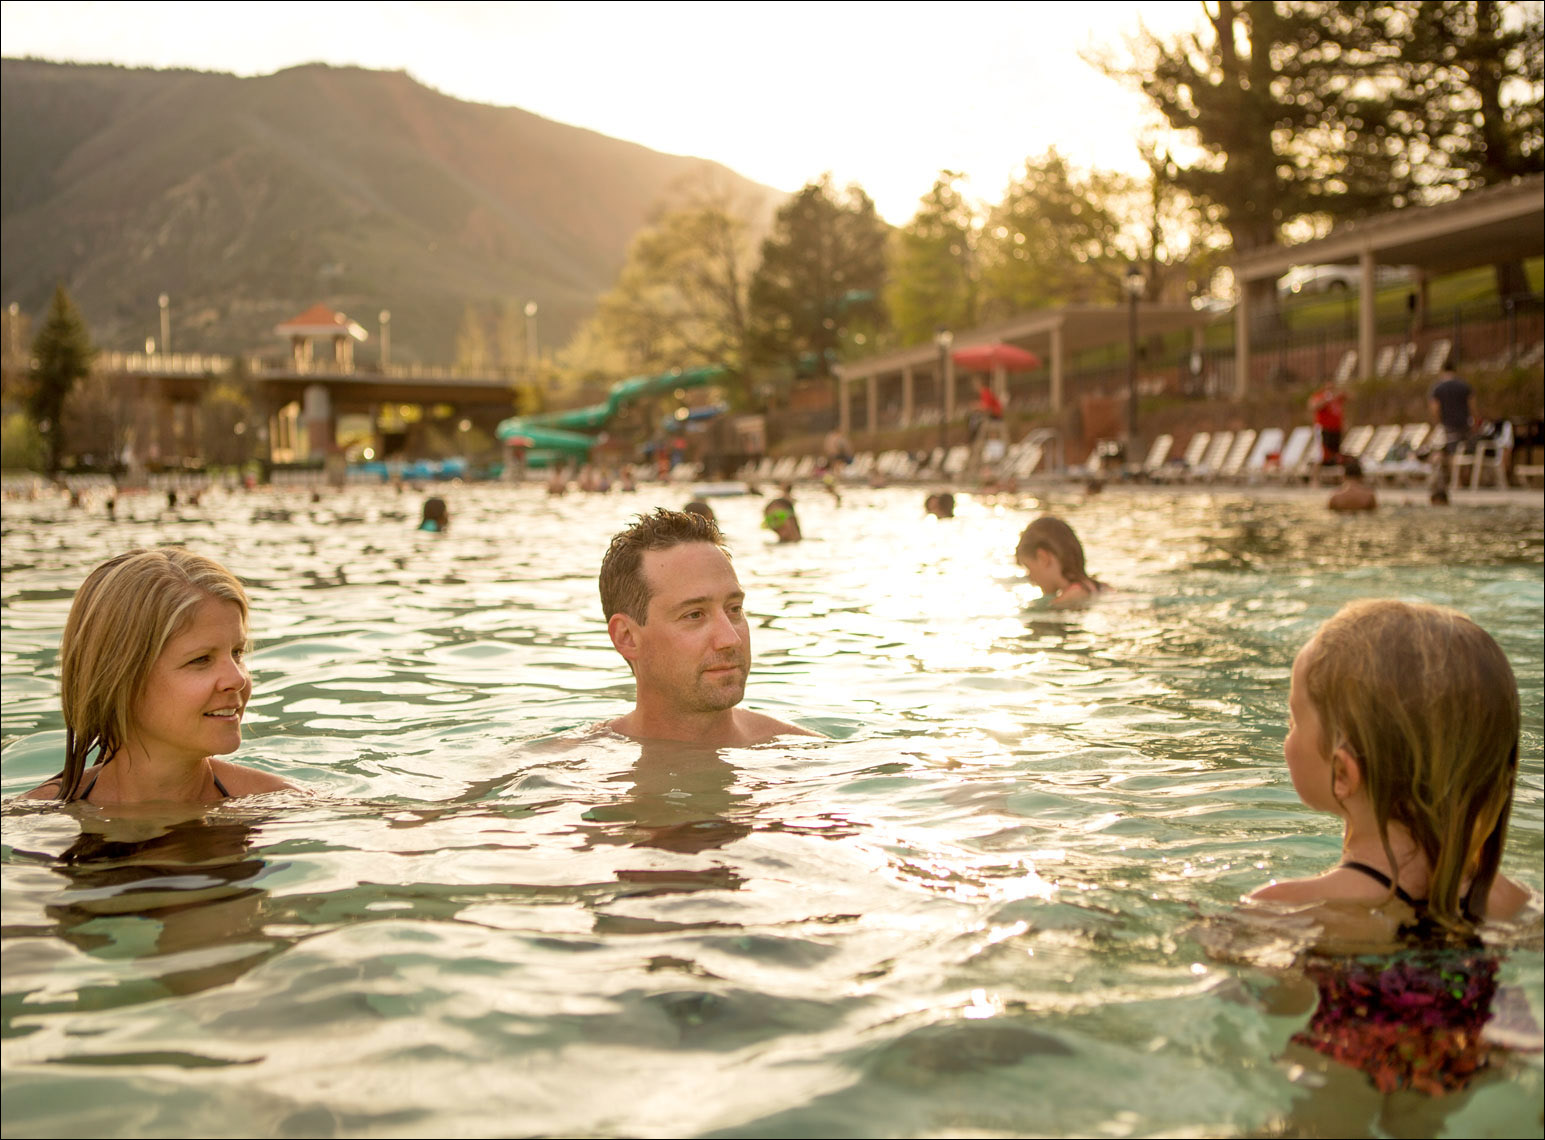 06_Life_Kris_Davidson_National_Geographic_Hot_Springs_Colorado_V2